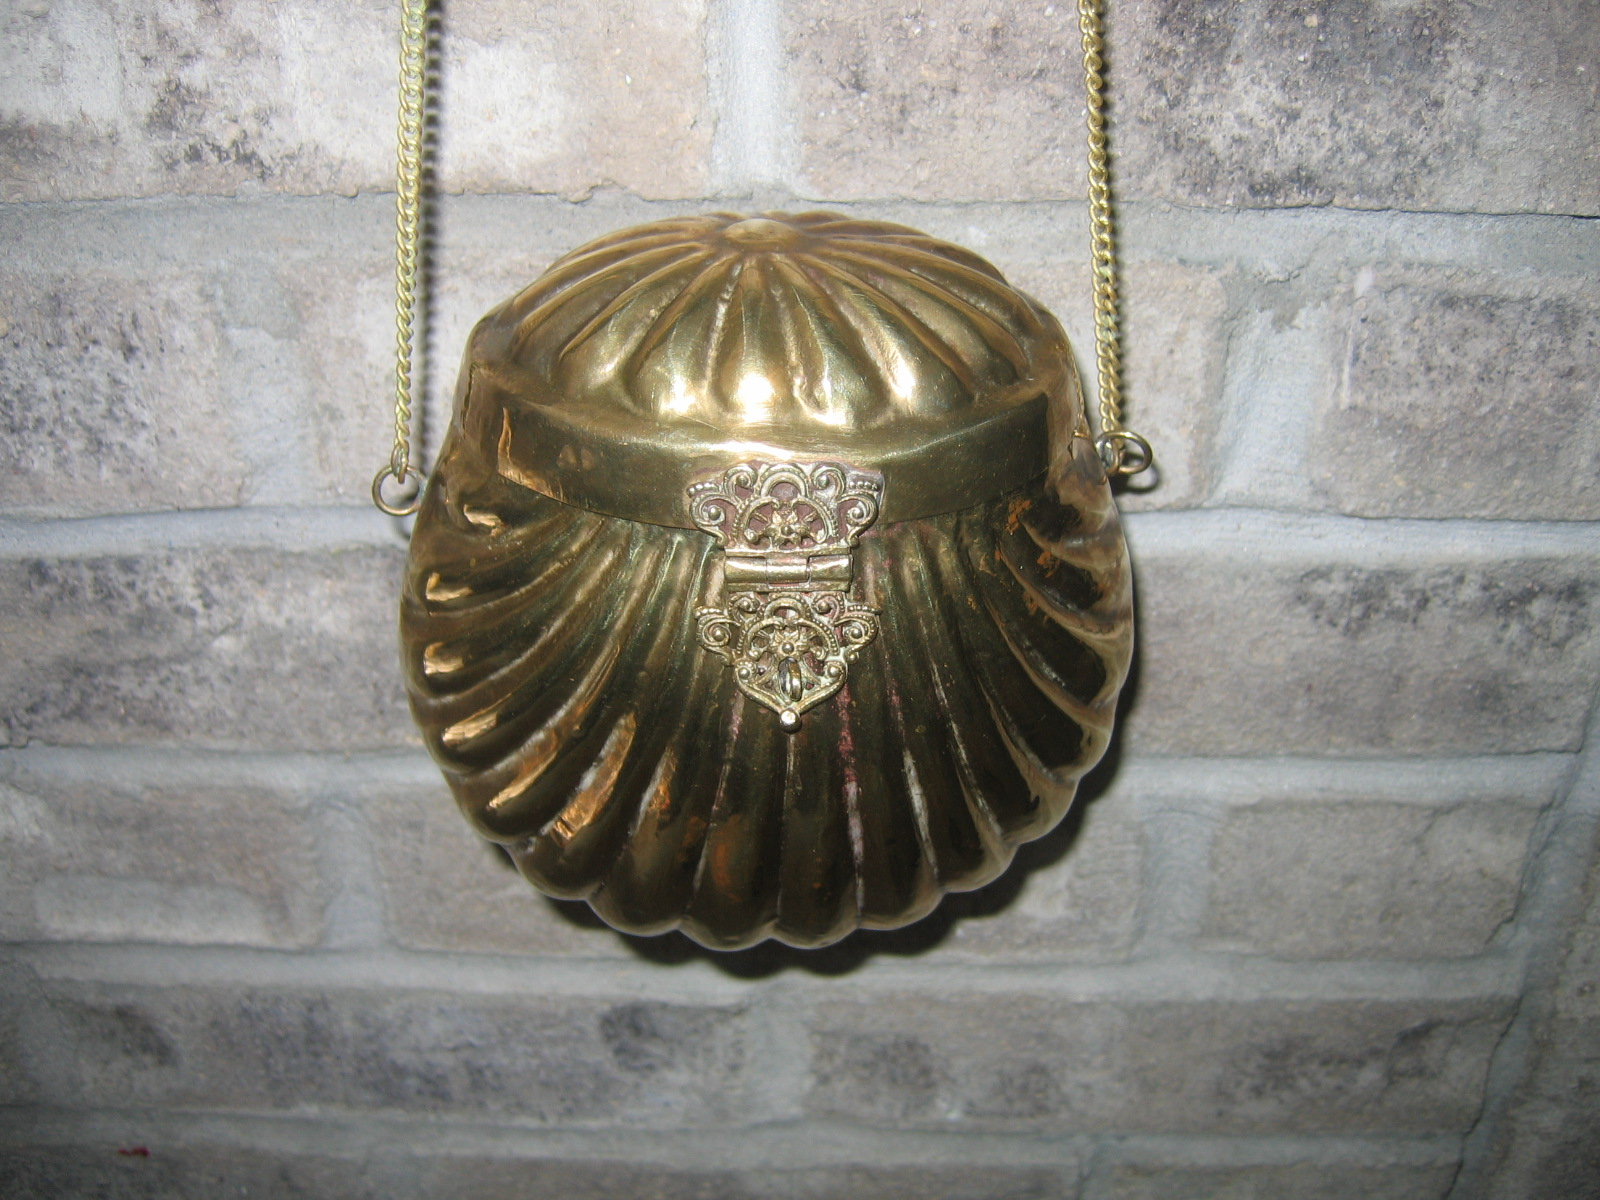 vintage brass purse bought